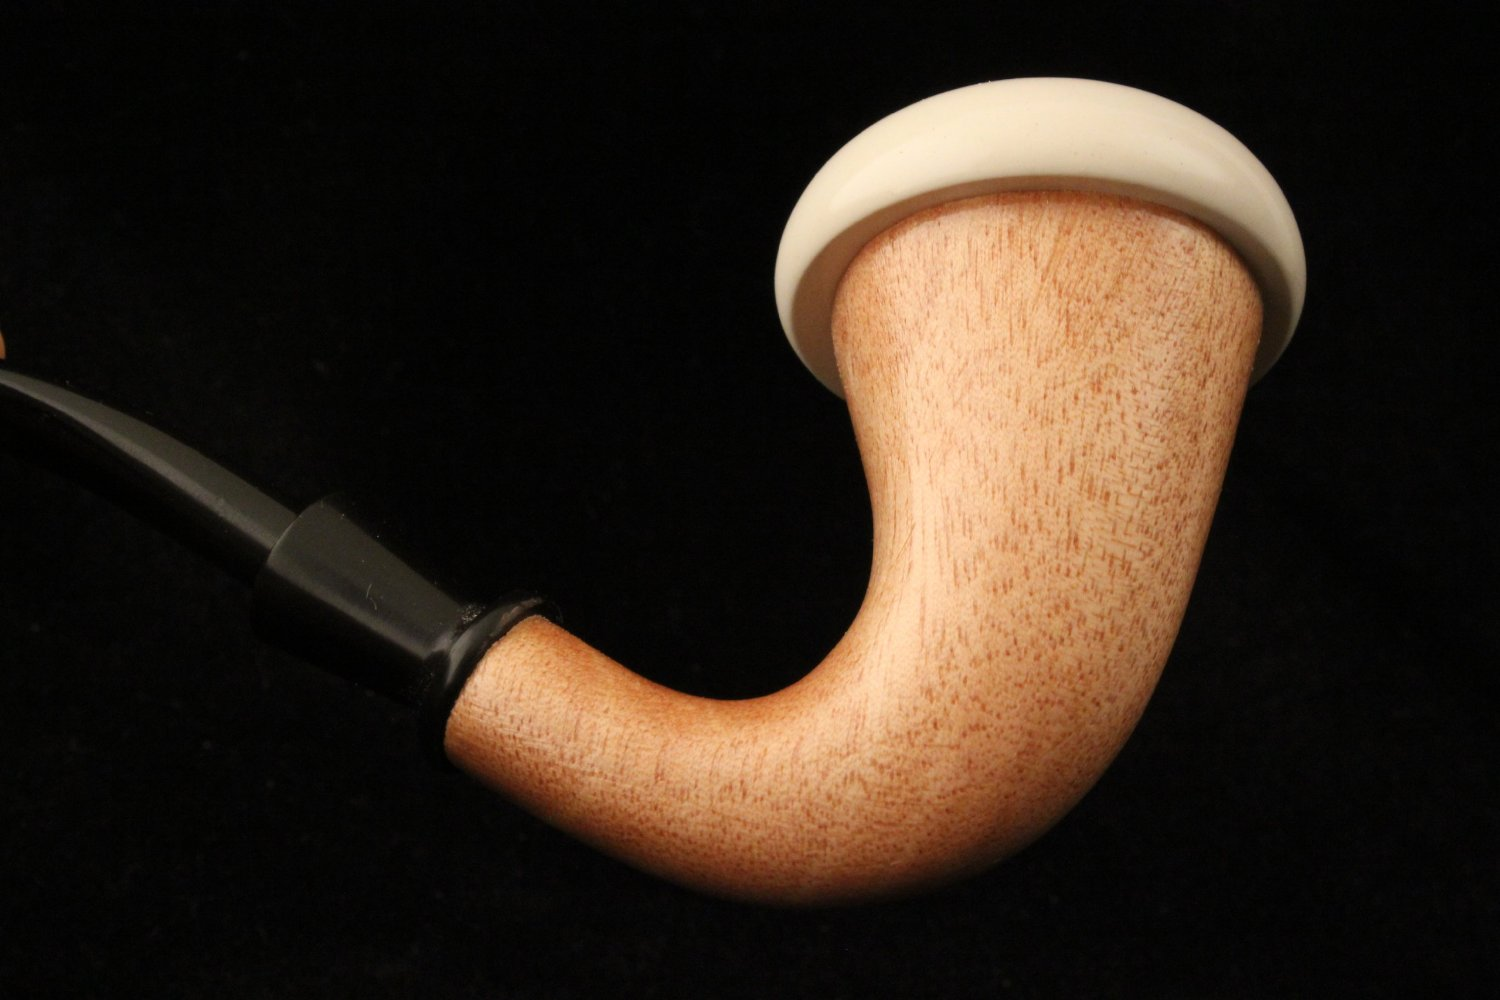 Cyber Monday Calabash Pipe Deals